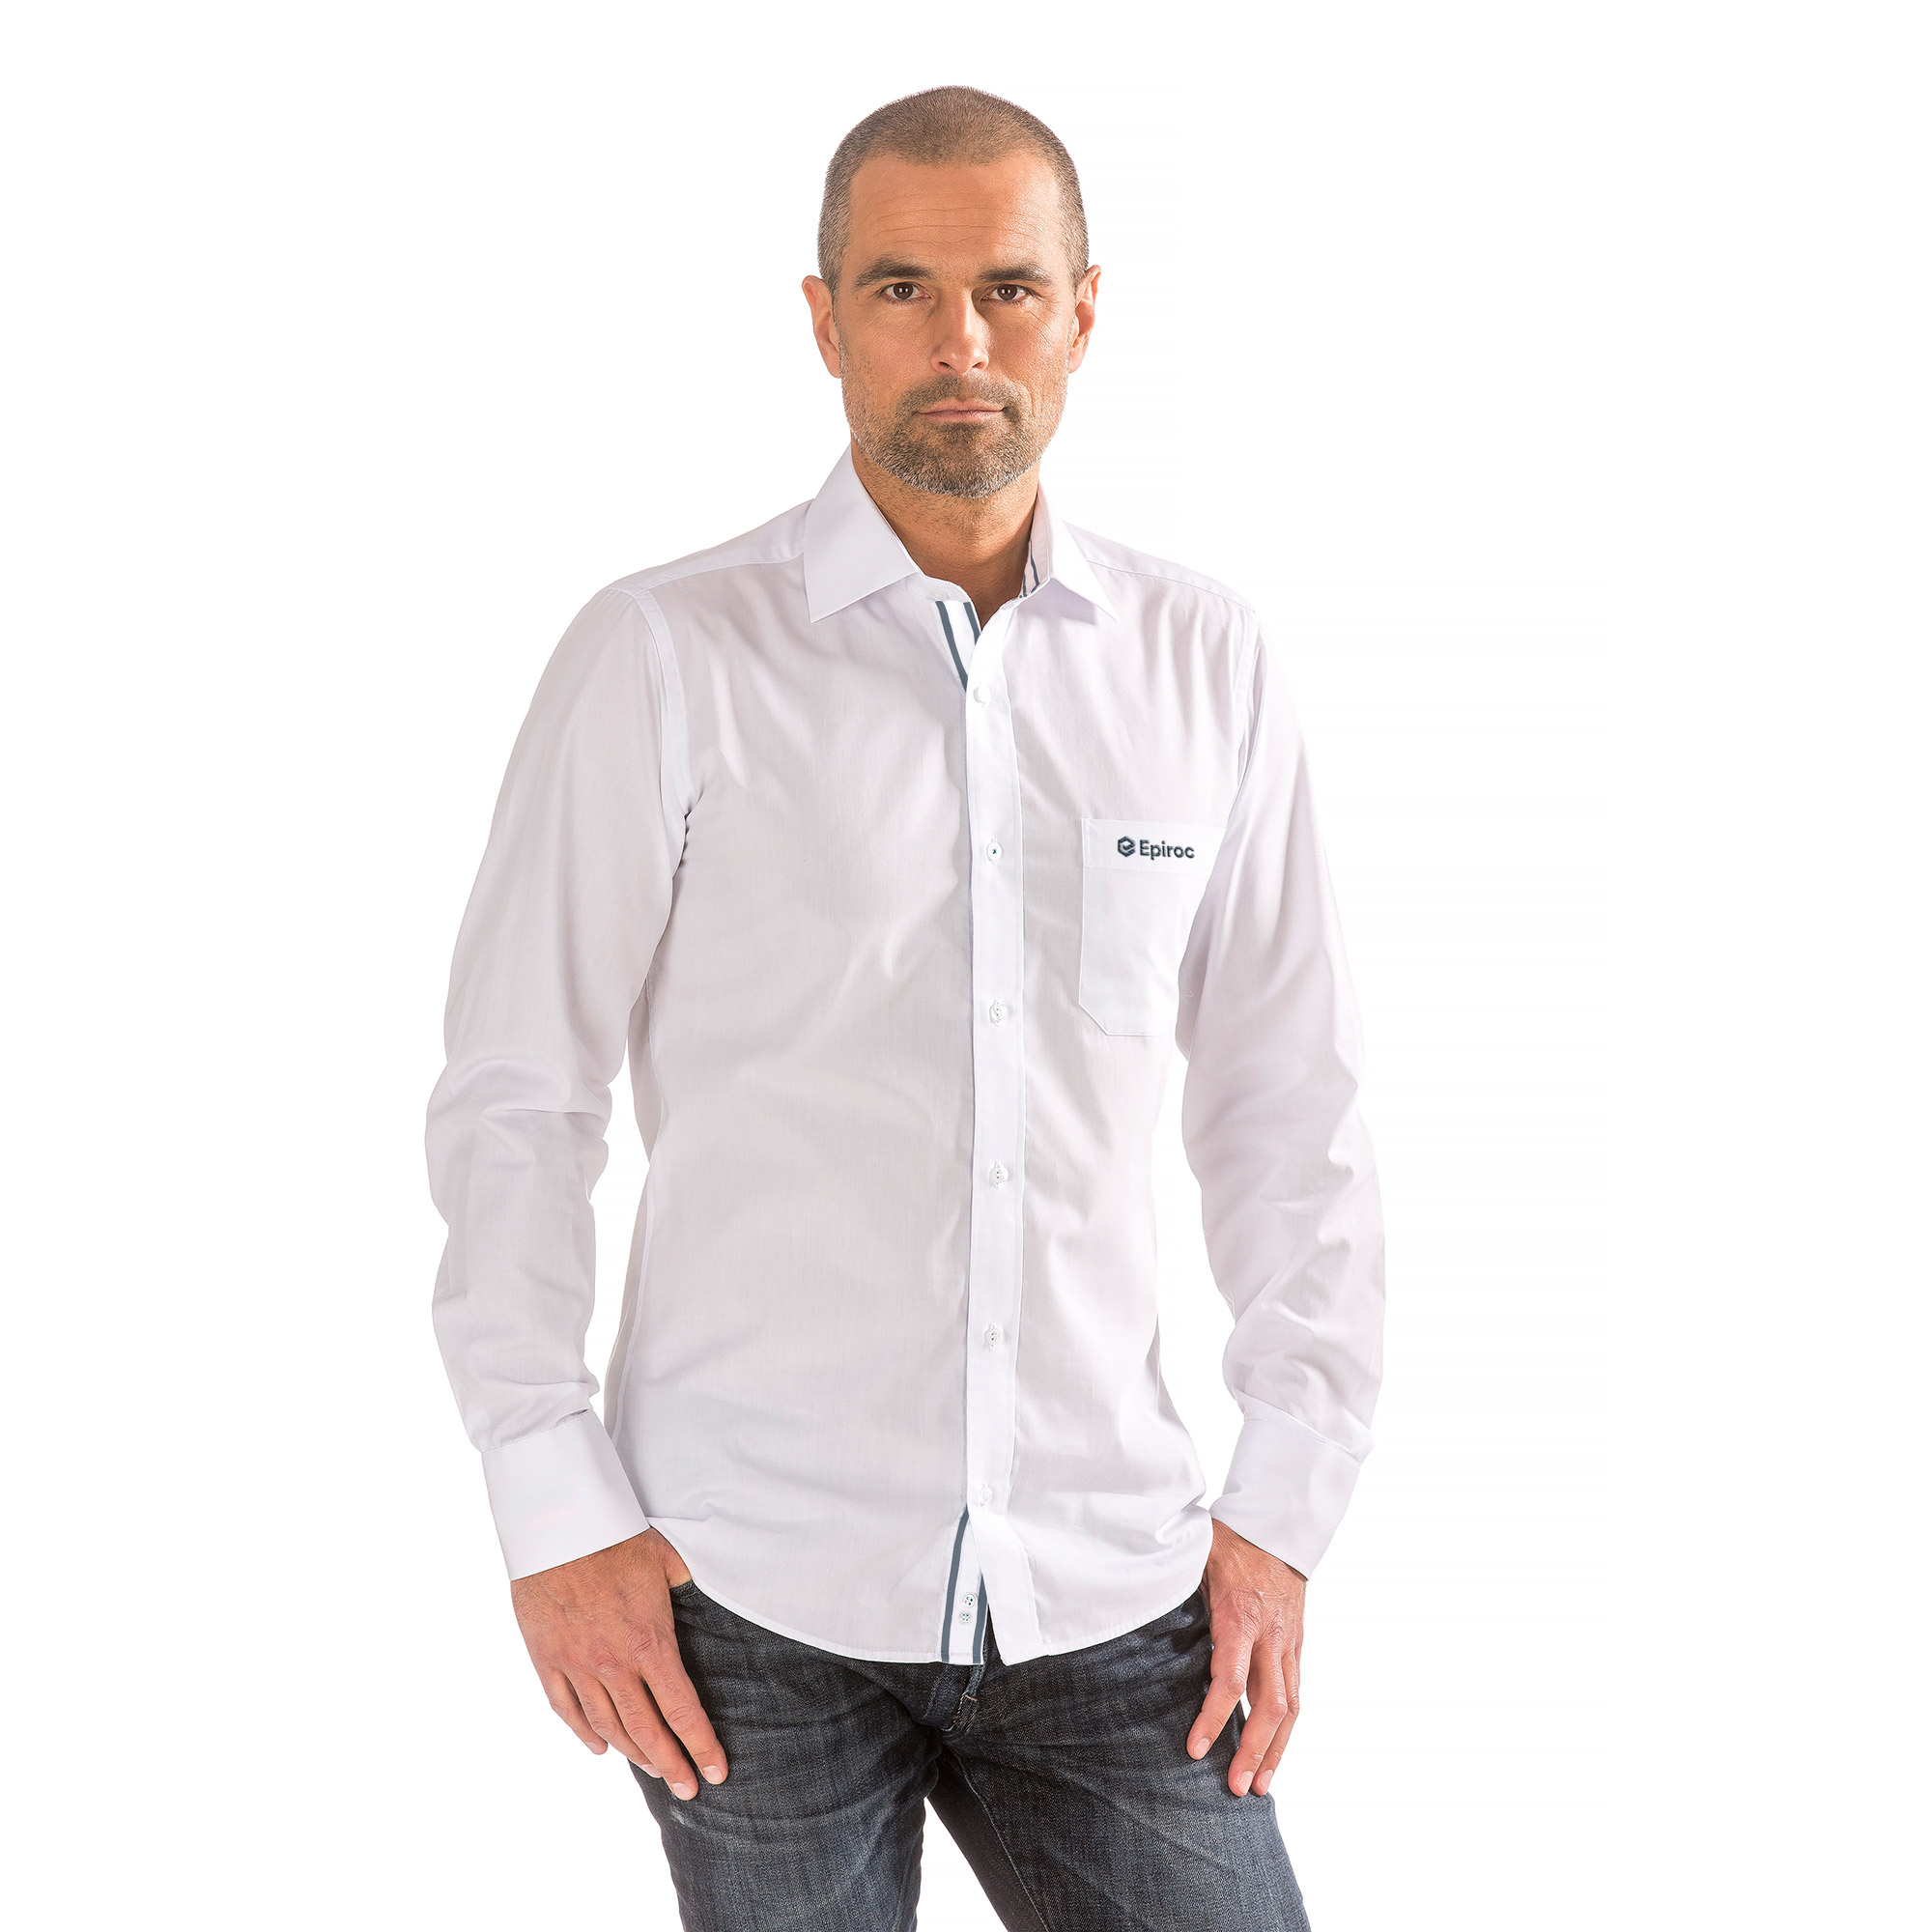 This versatile shirt gives you the possibility of wearing it strictly as business white or as something more casual. Details such as woven ribbons on the inside collar, placket, and cuffs makes this shirt special. The shirt is crafted from cotton and poplin and tailored for a contemporary fit.